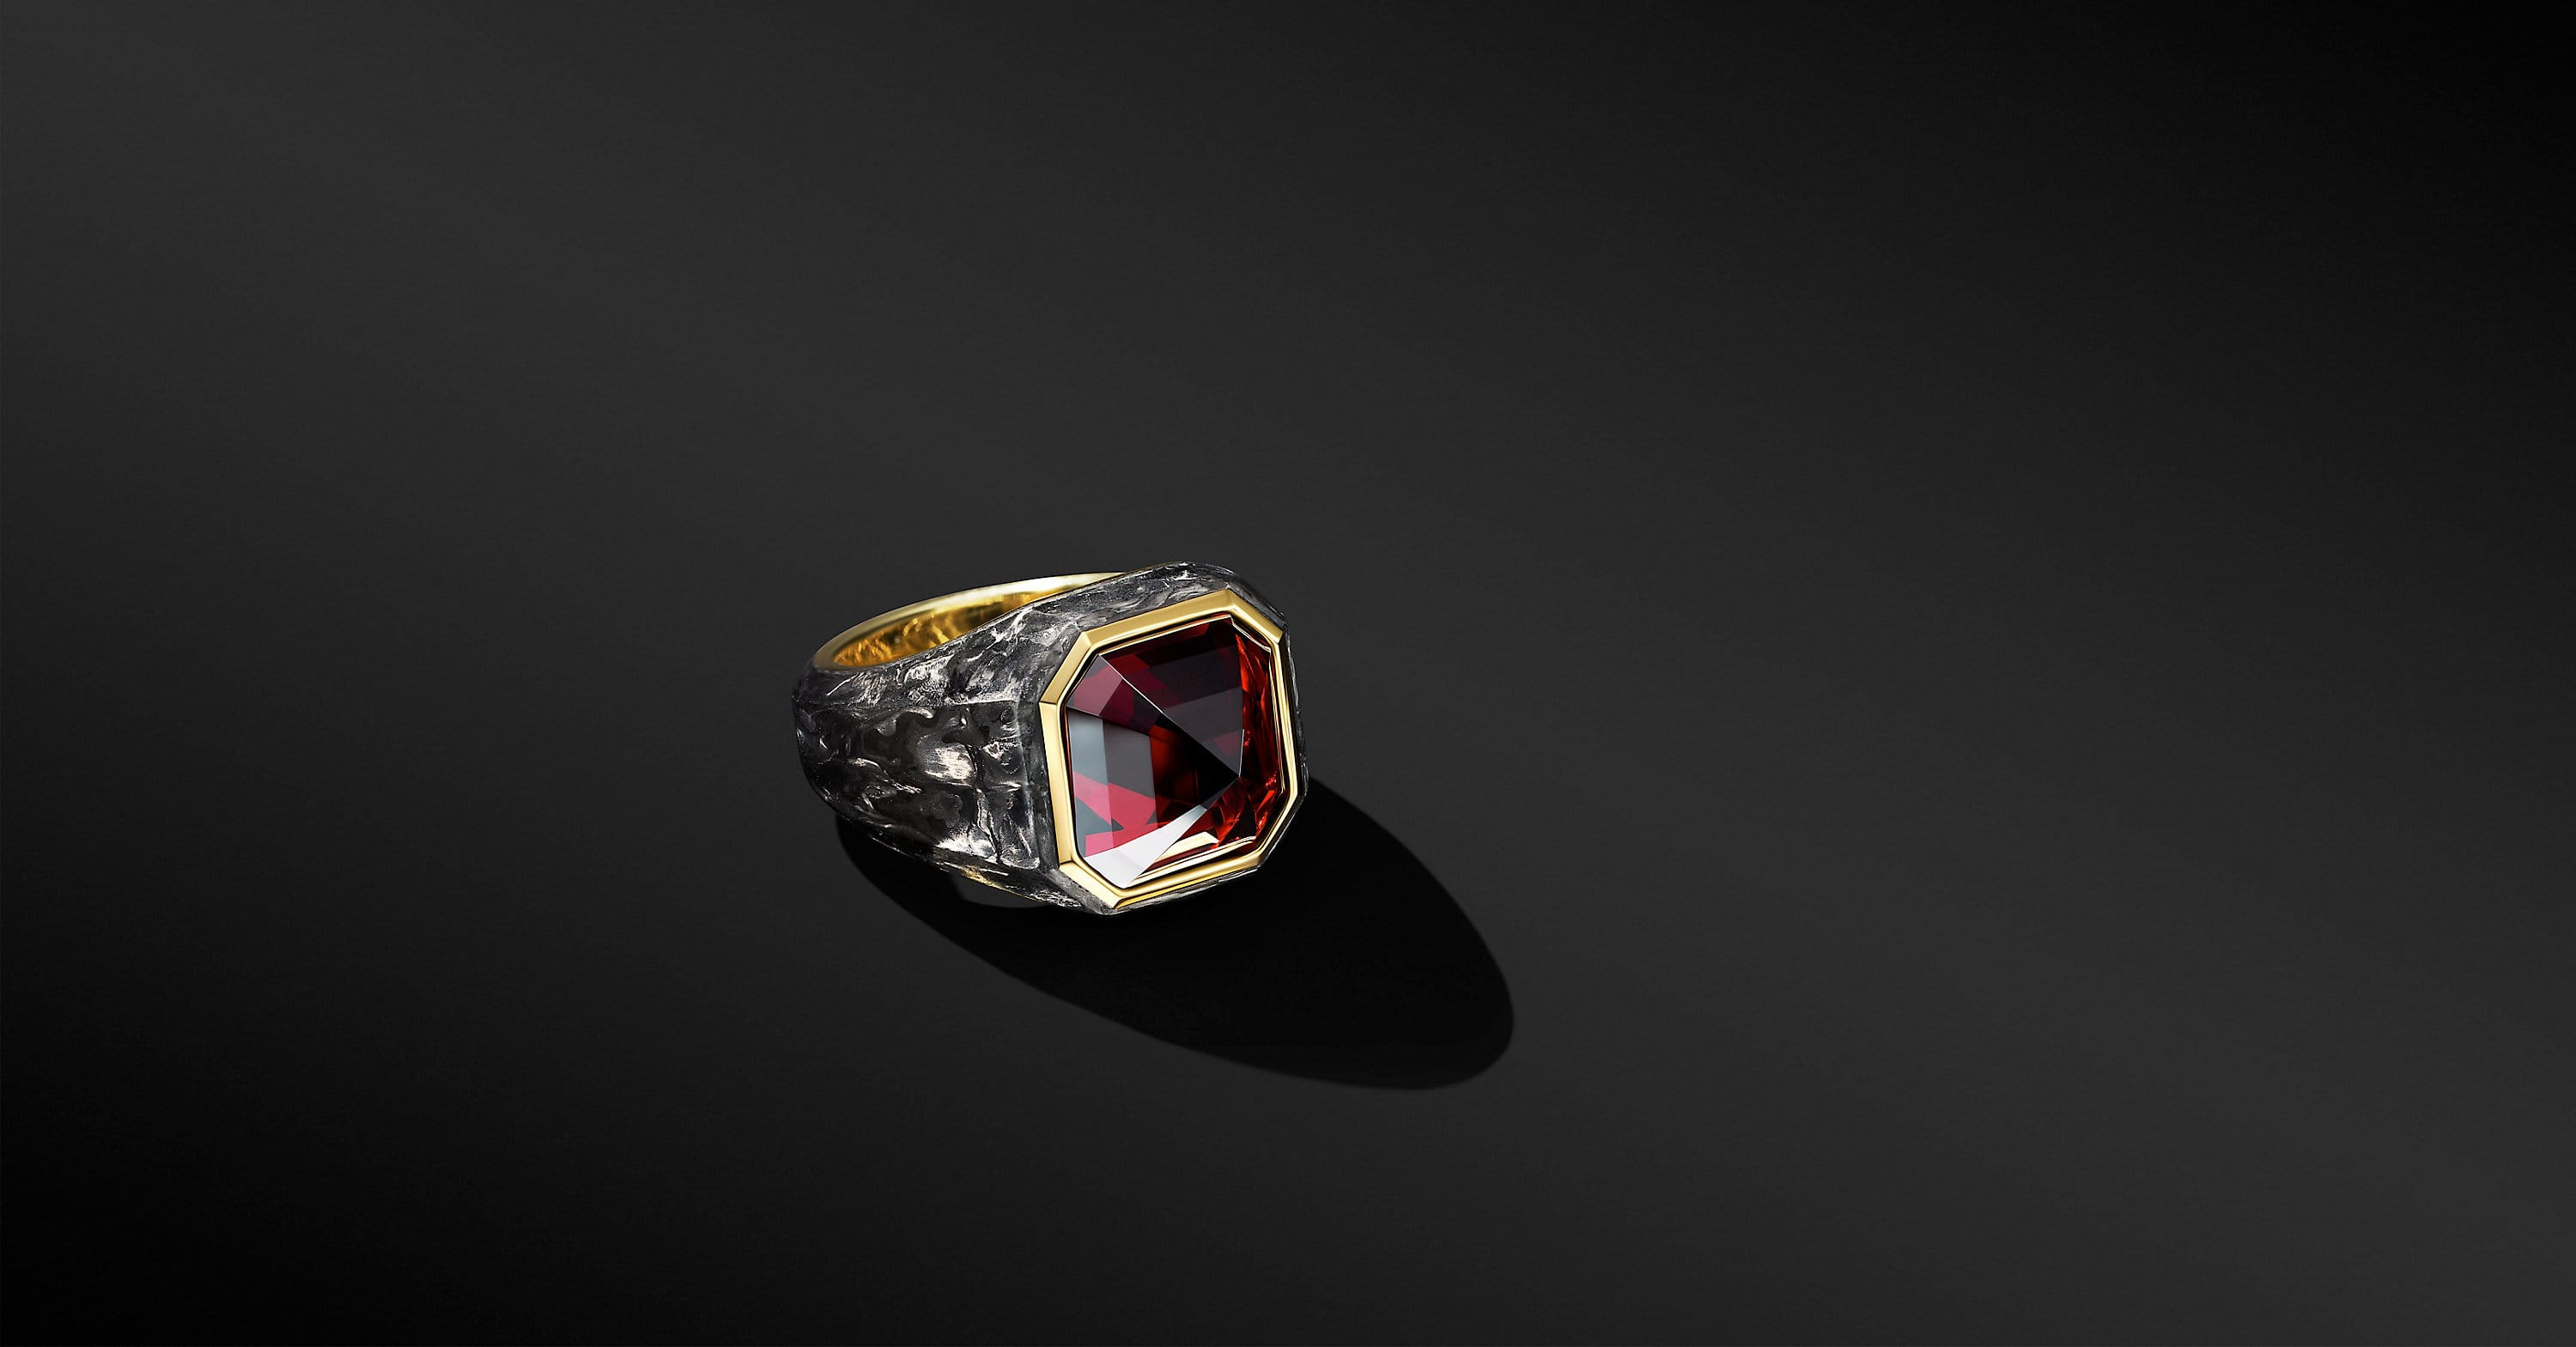 Forged Carbon Signet Ring with 18K Yellow Gold, 15mm